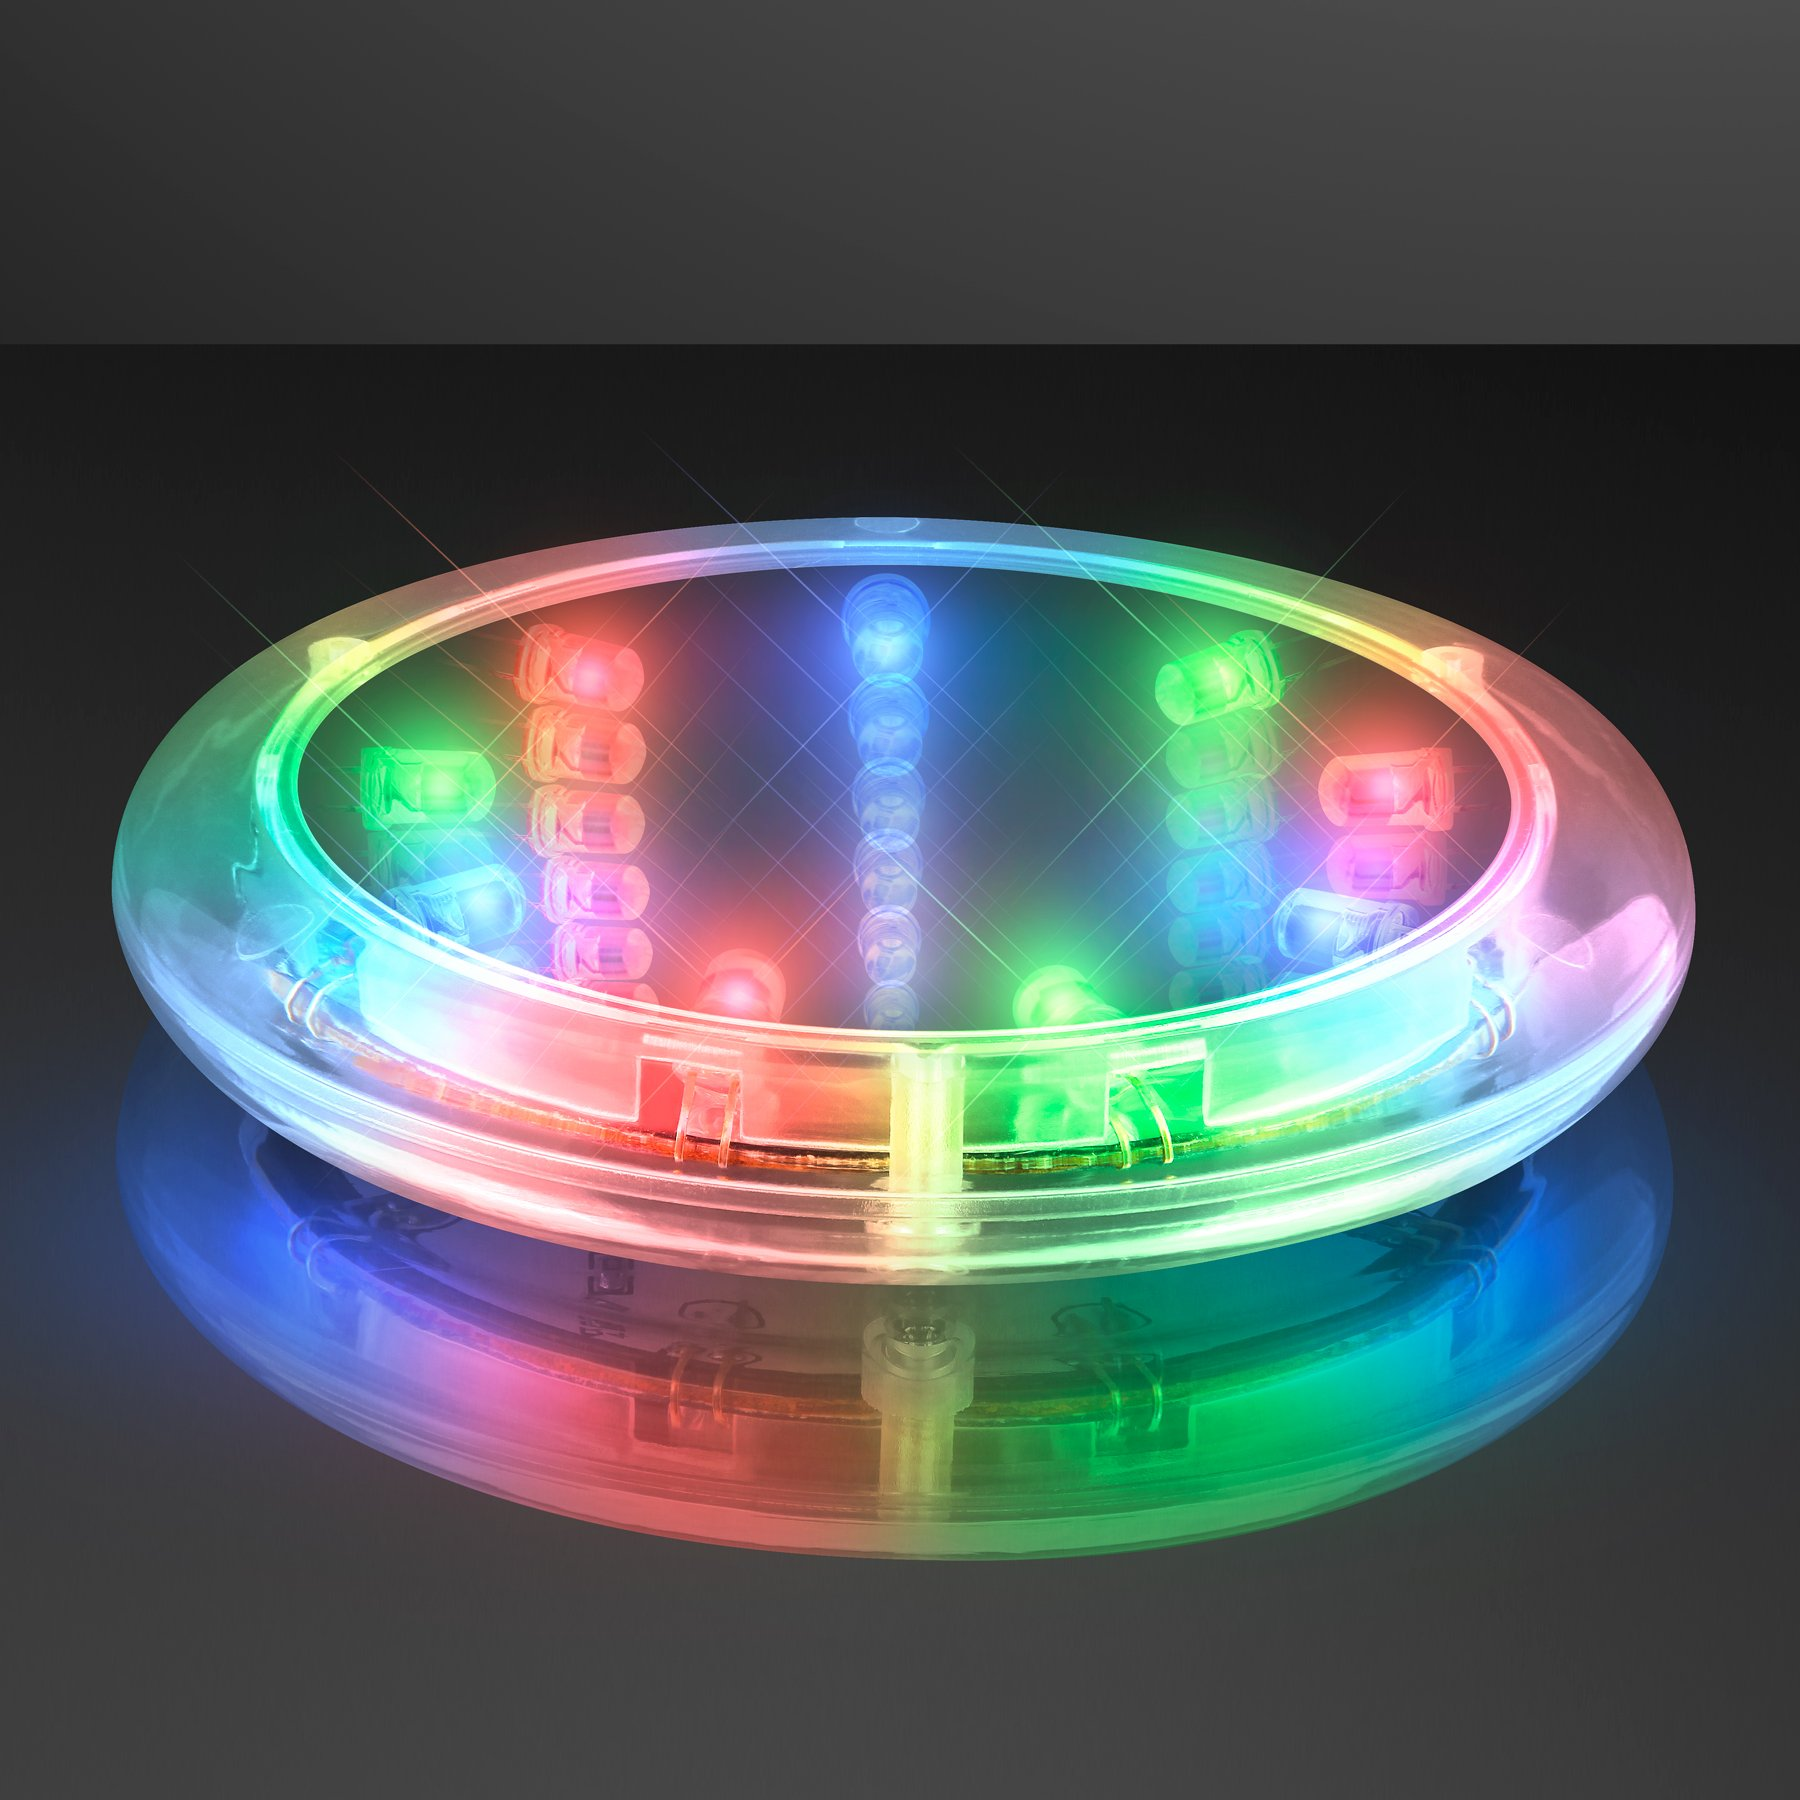 Infinity Tunnel LED Coasters (Set of 12)